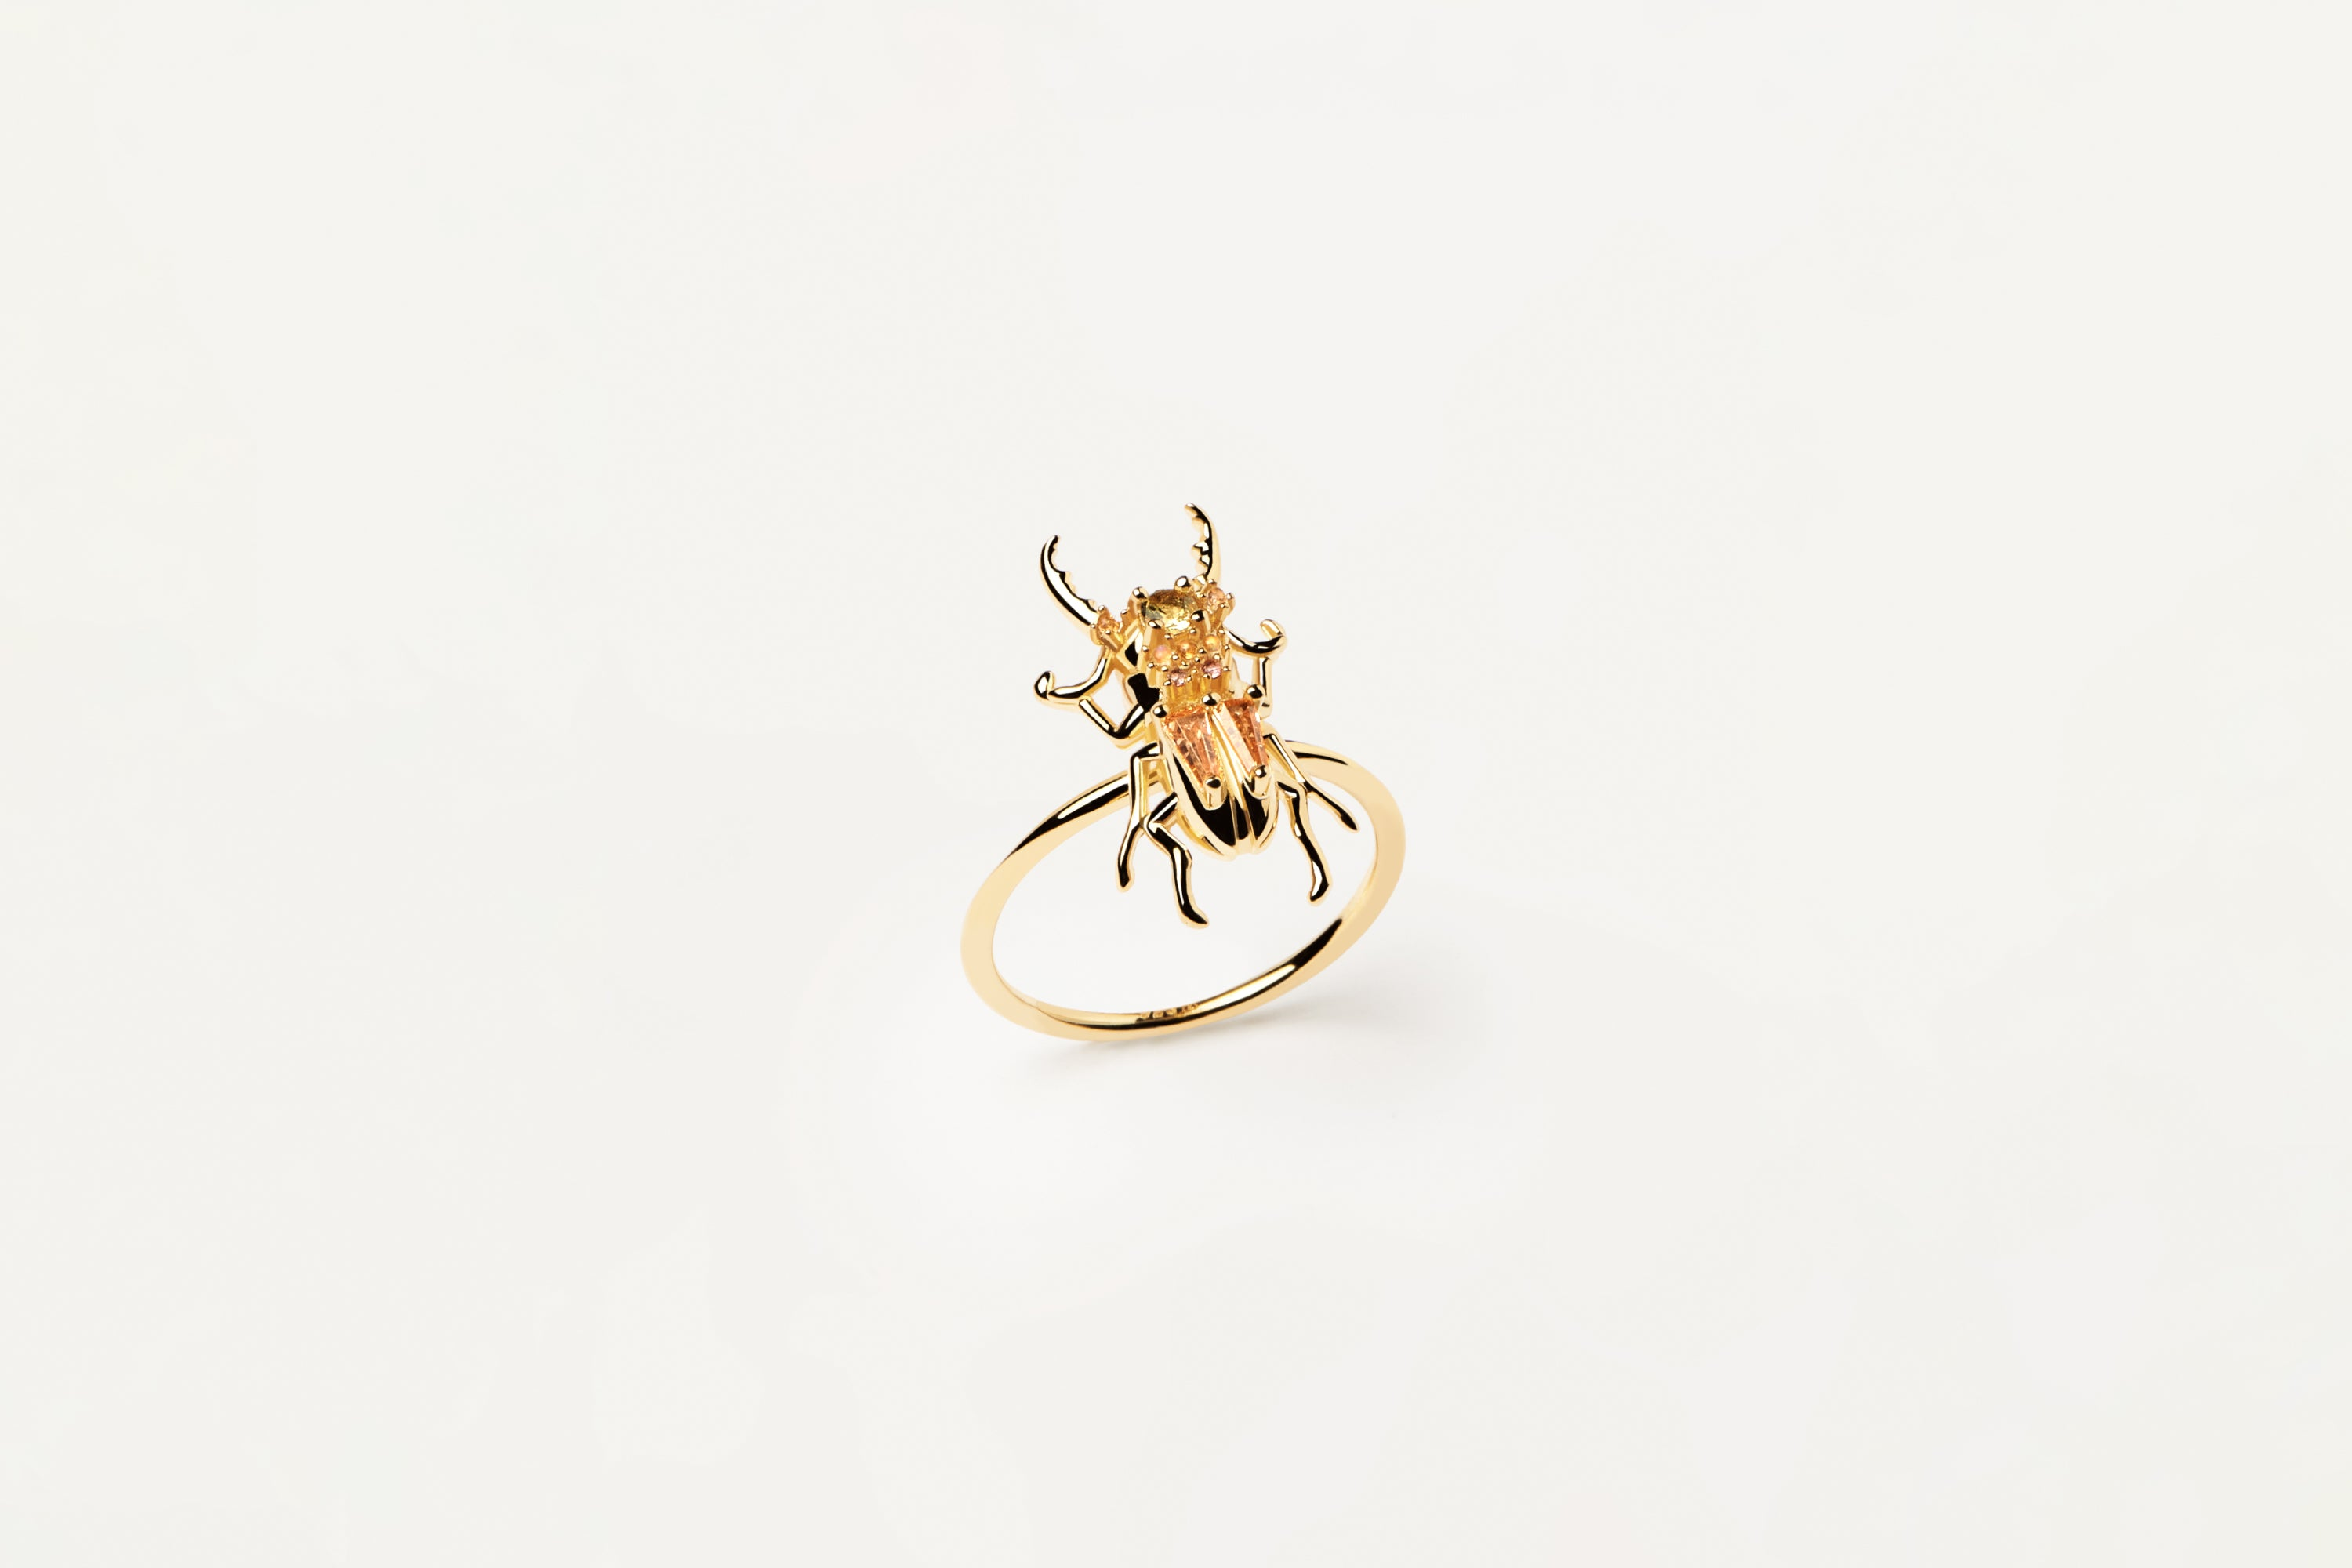 Jewelry cool-to-know curiosities and facts